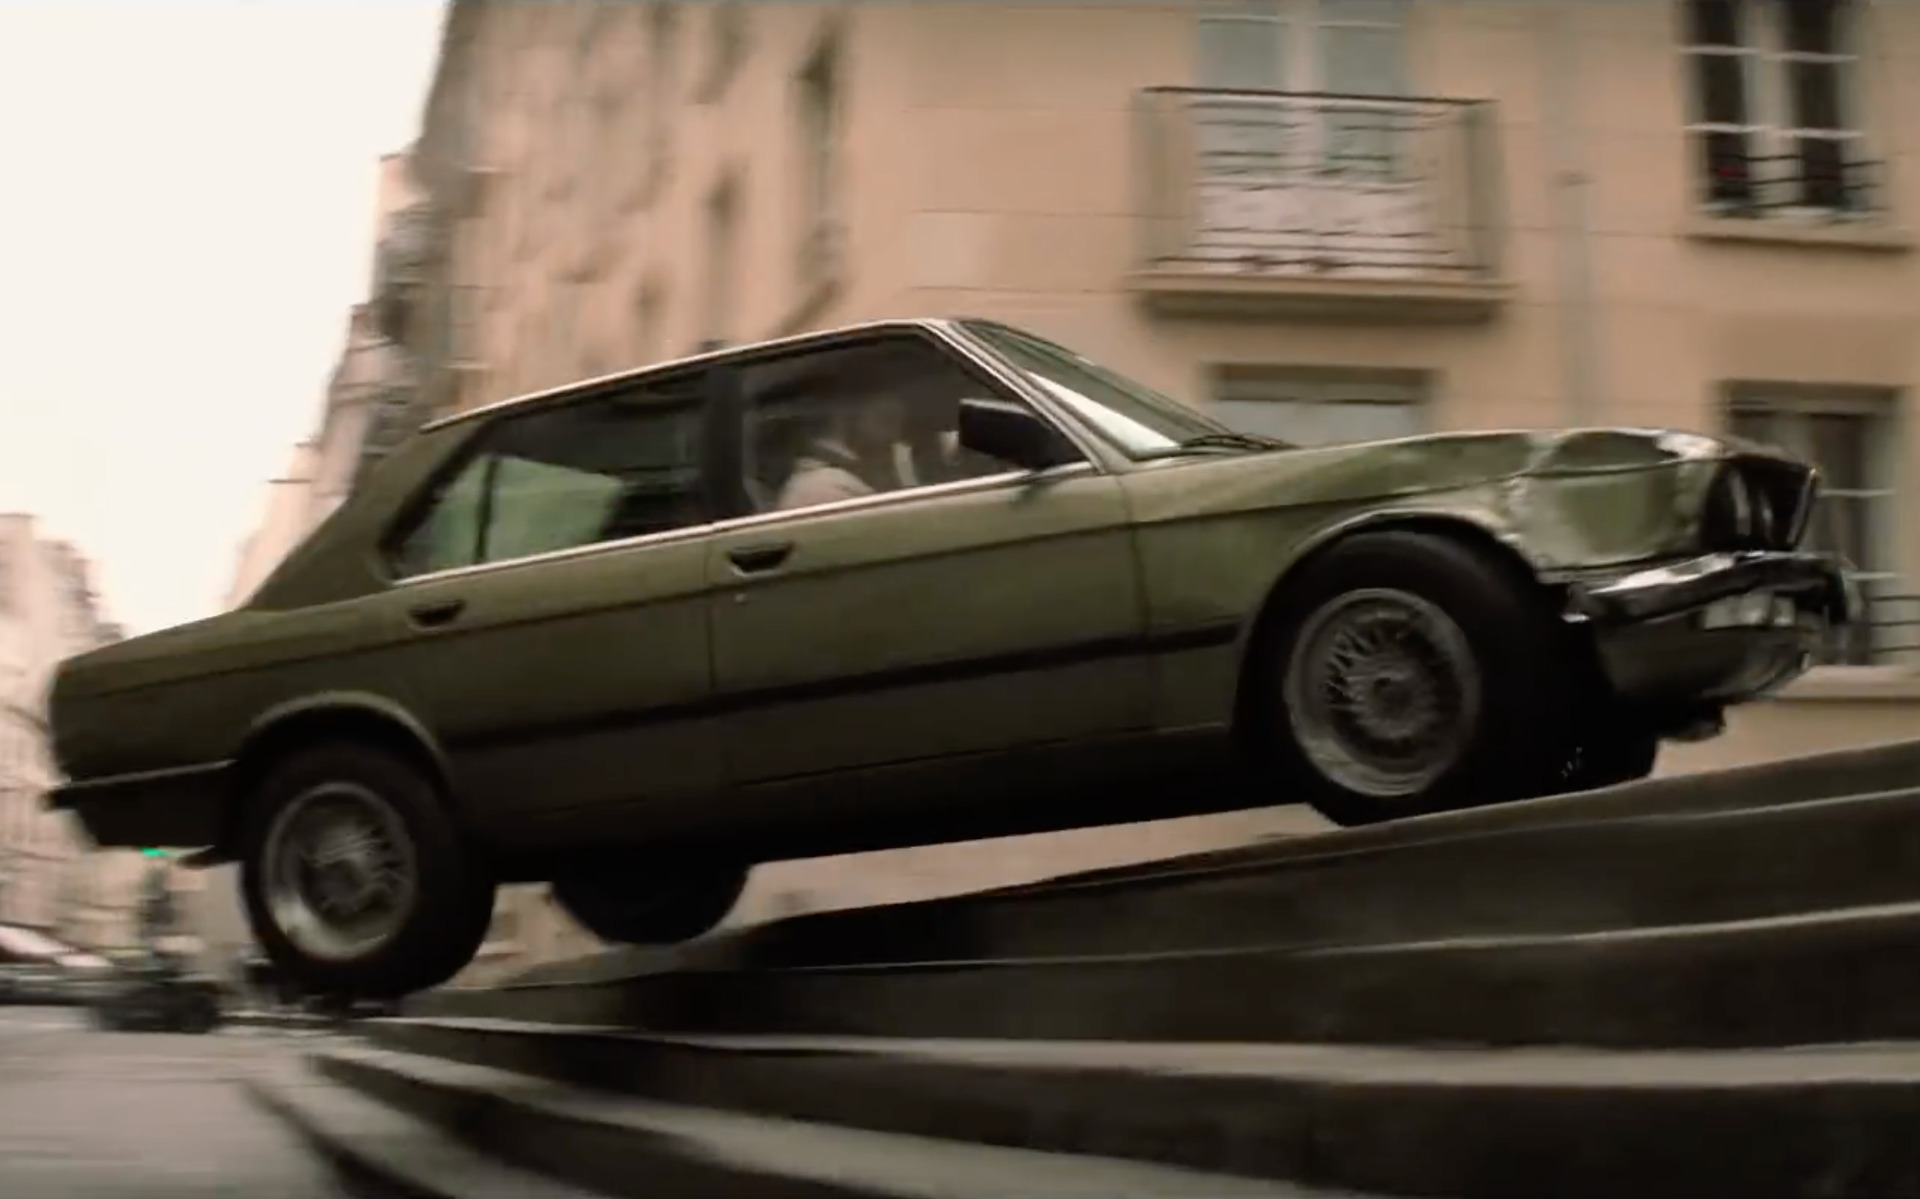 Car Parking Wallpaper Mission Impossible Fallout Tom Cruise F 228 Hrt Bmw 5er E28